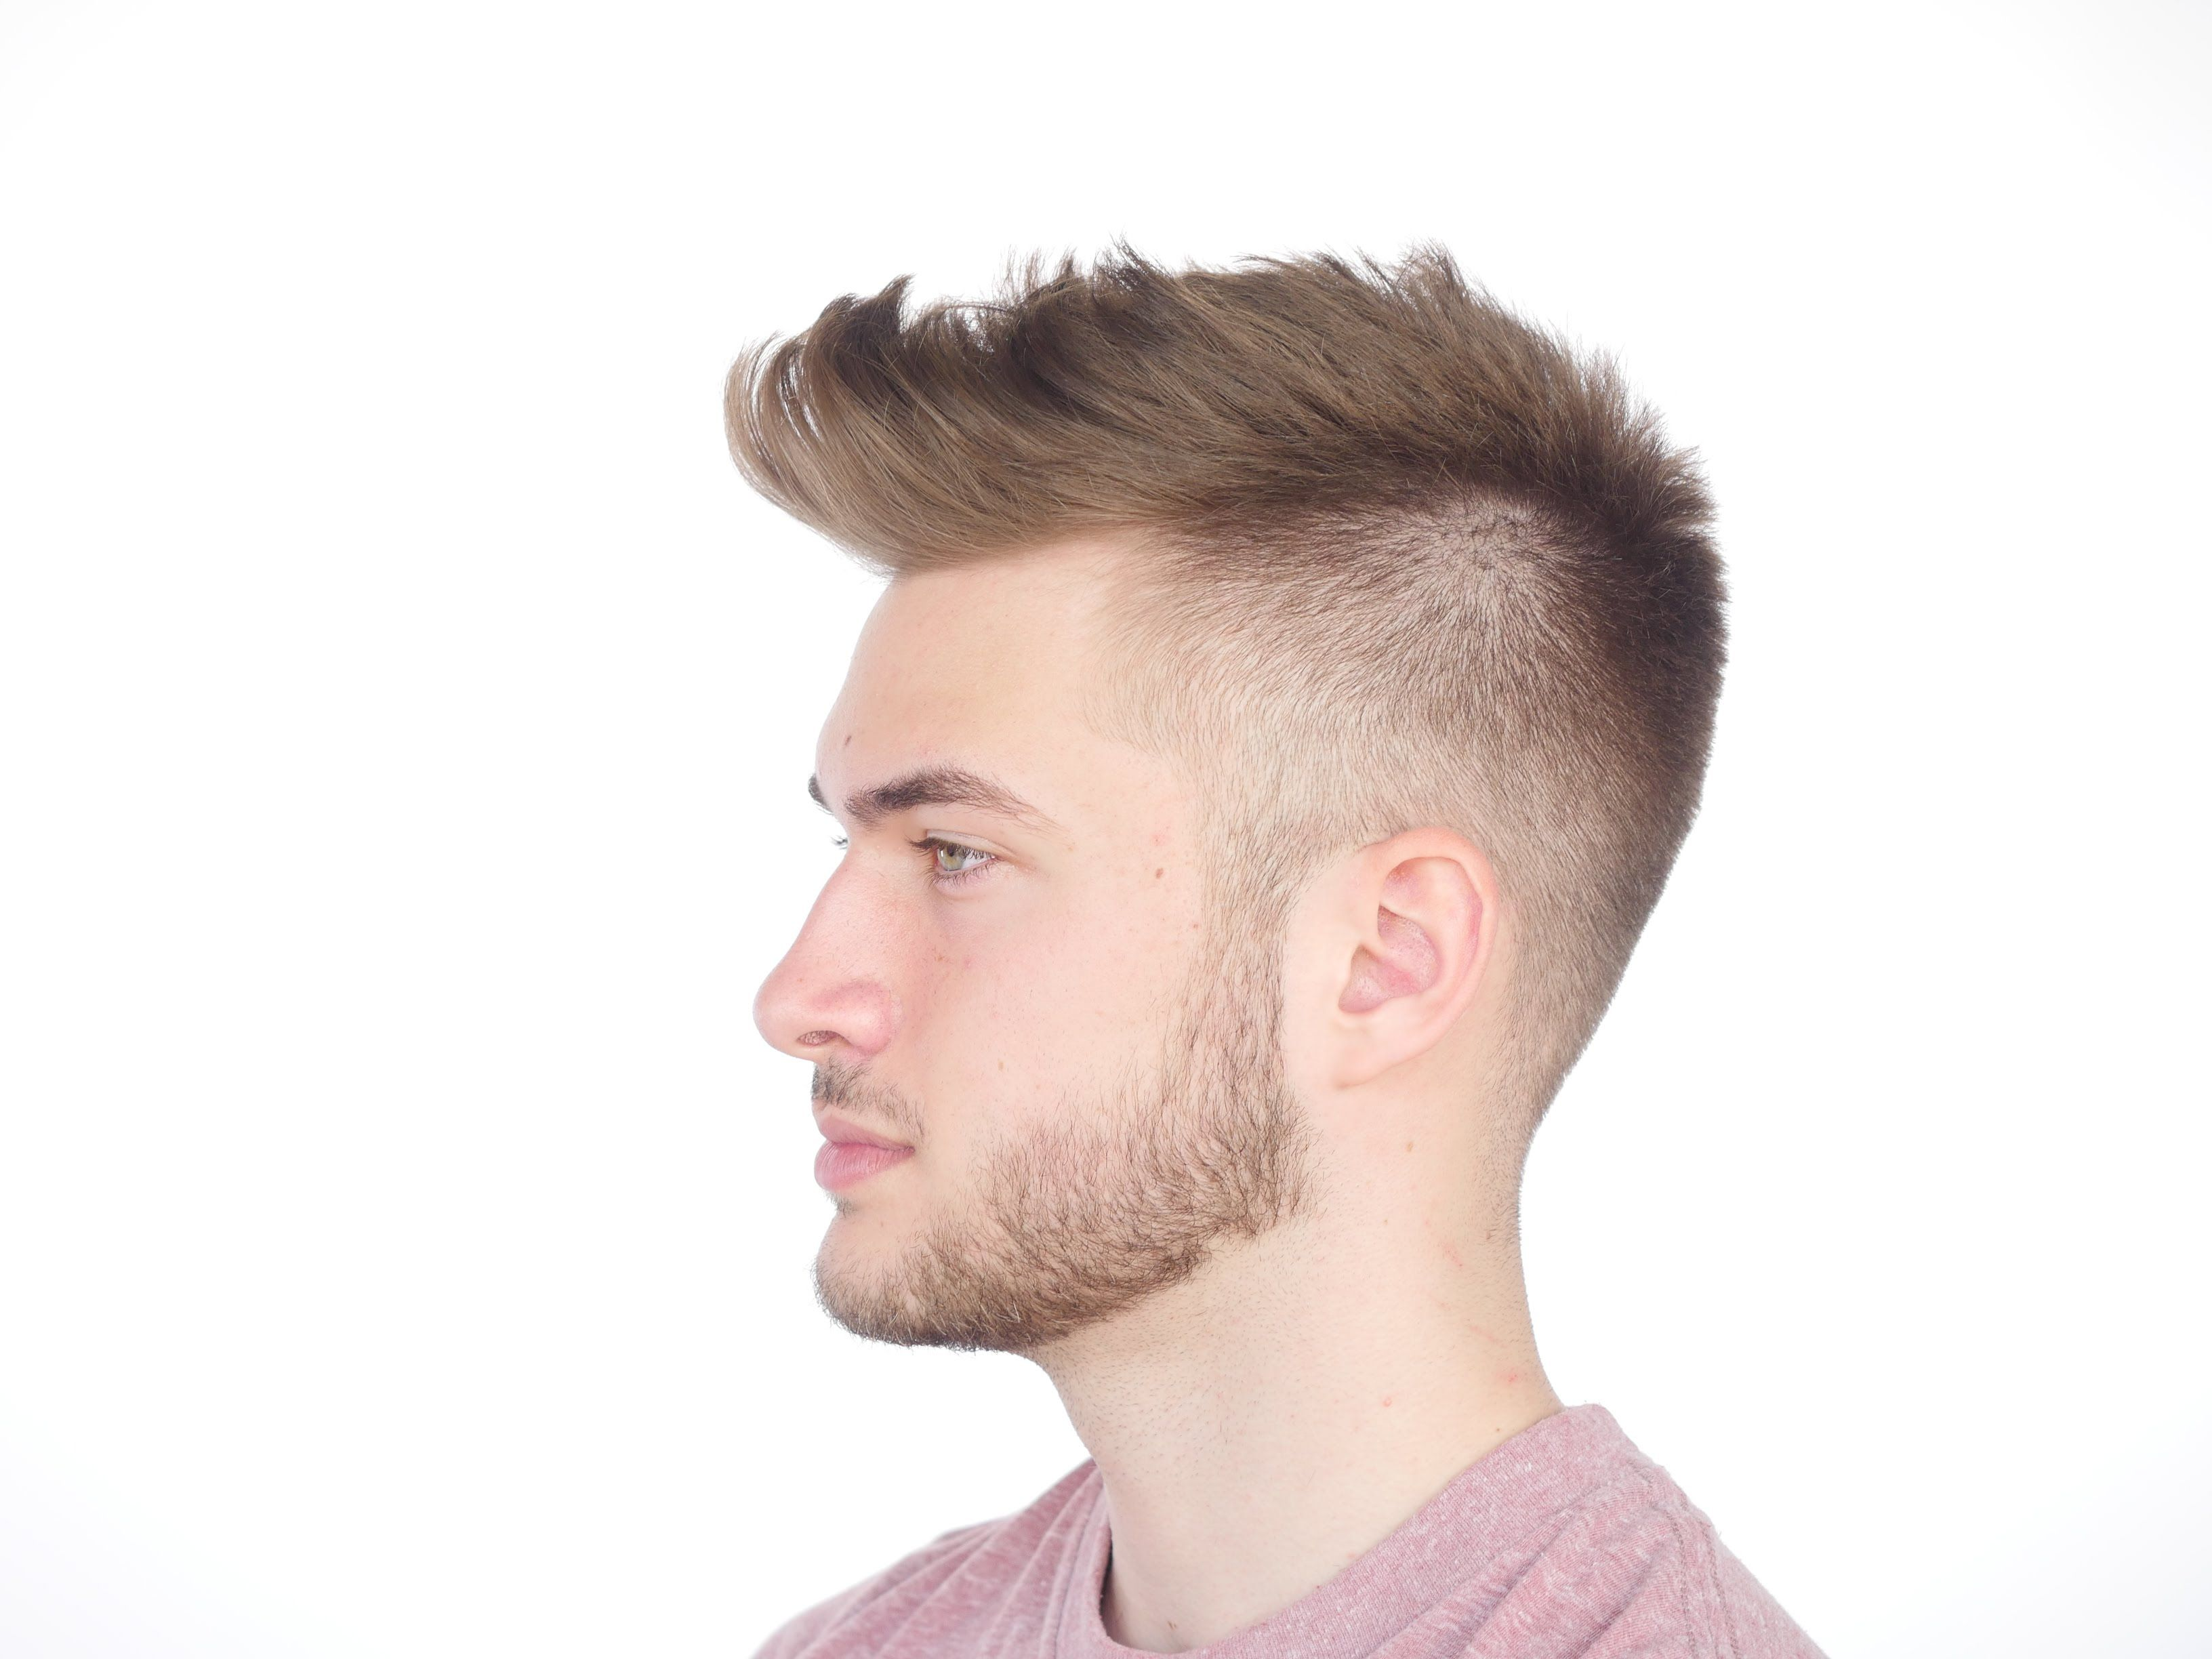 male model haircut - thesalonguy